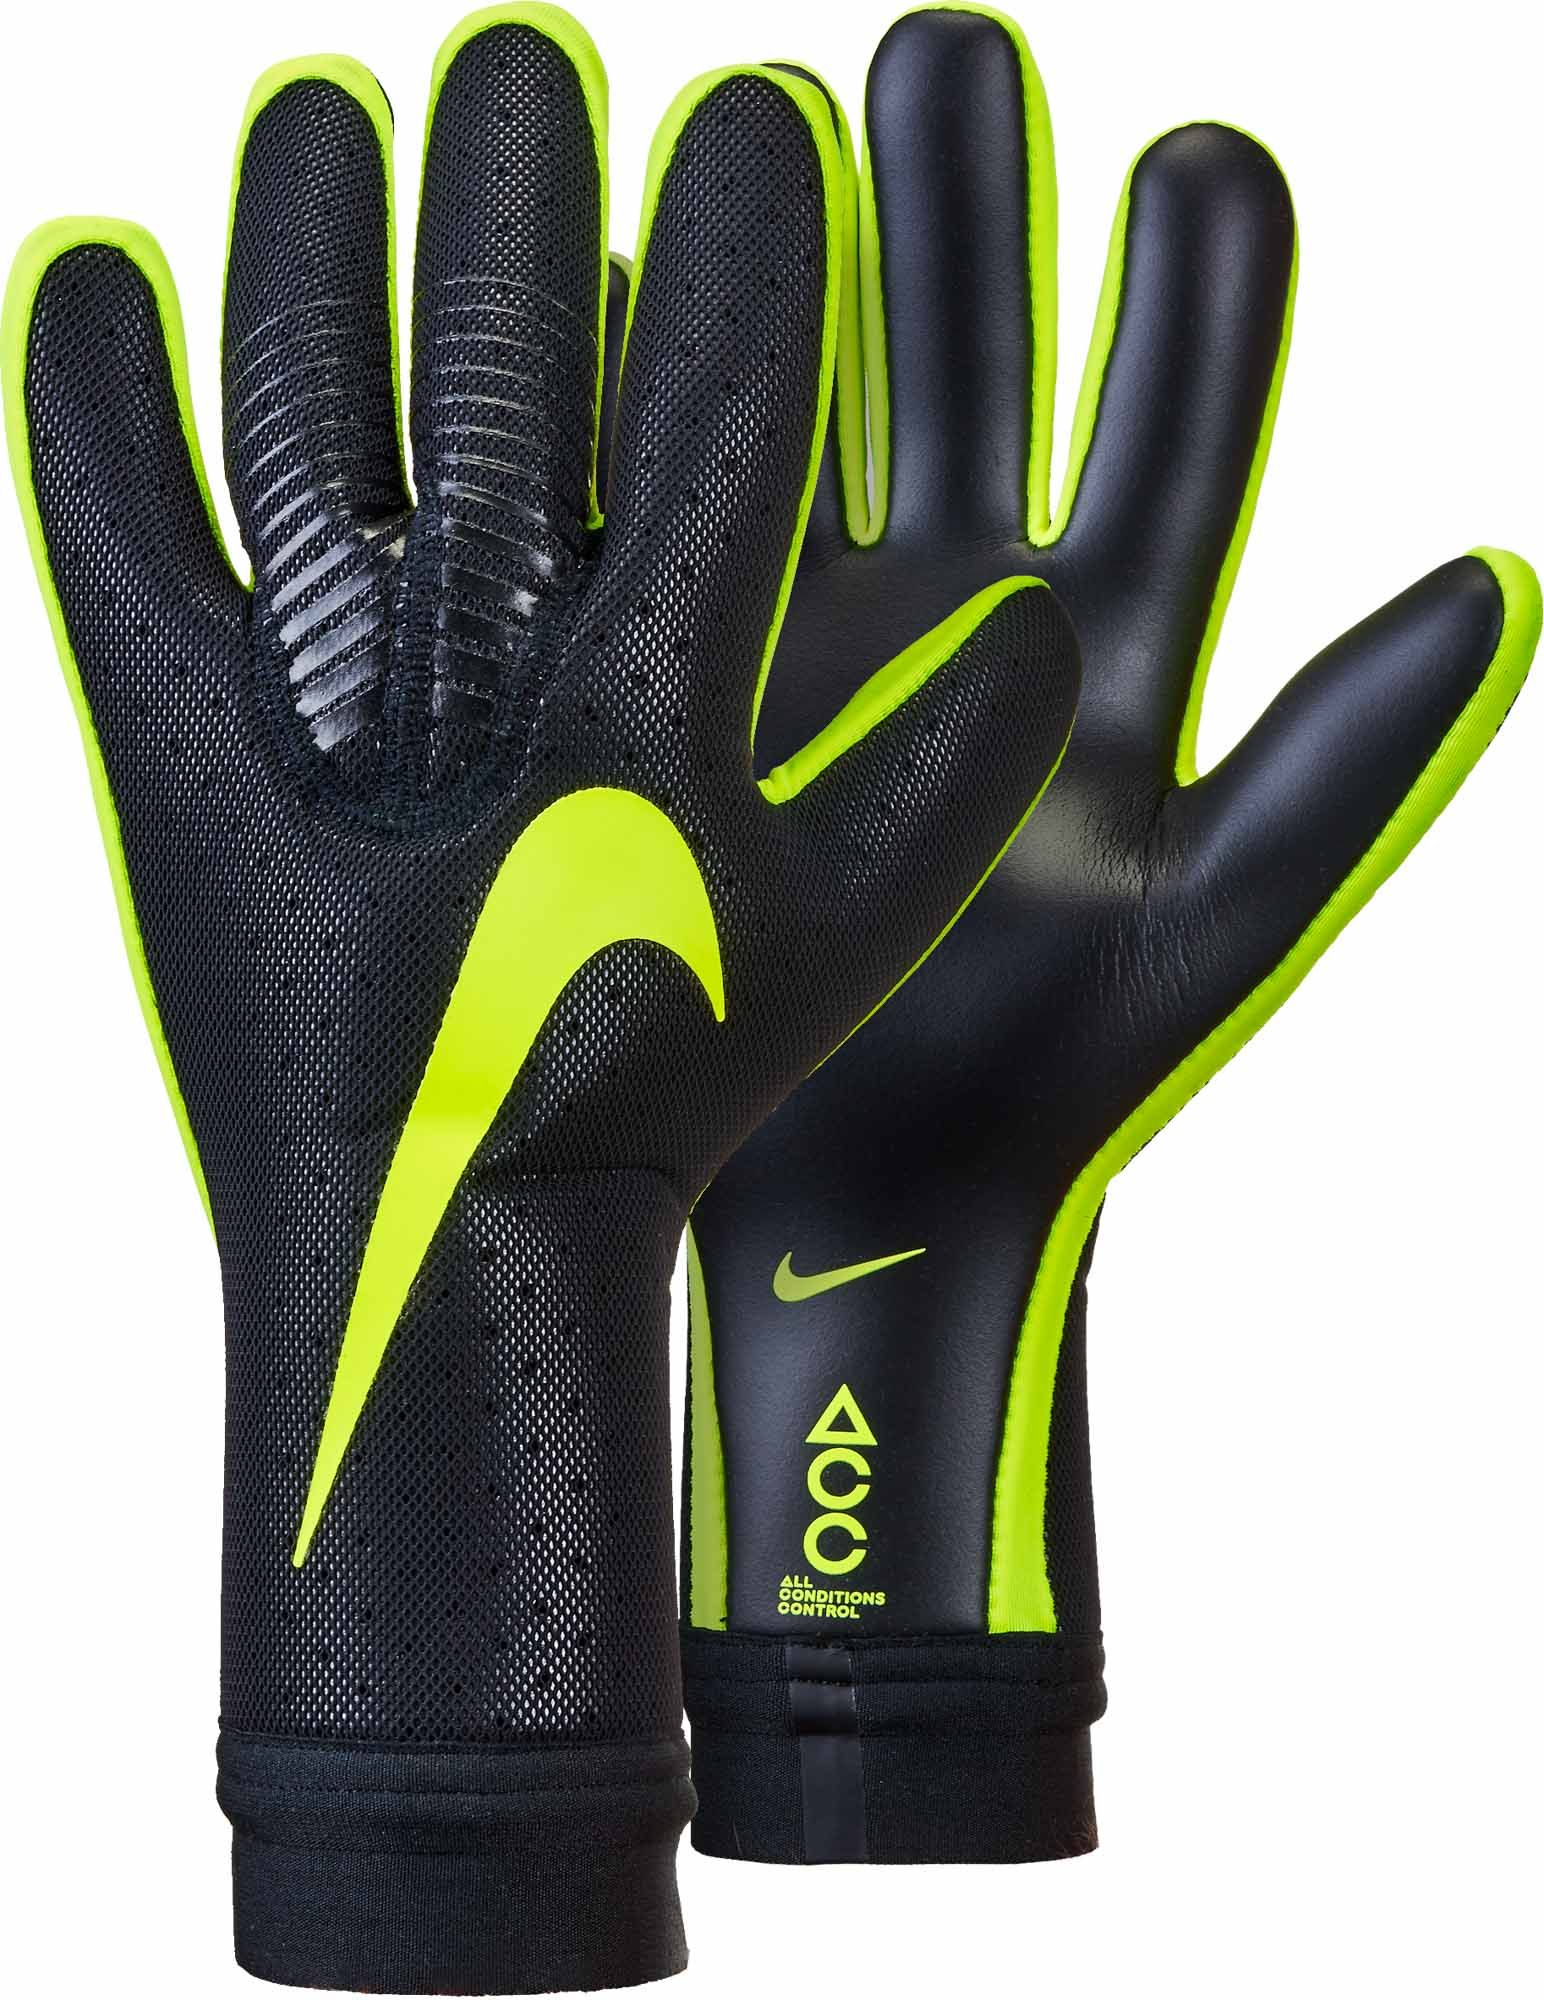 Nike Vapor Touch Goalkeeper Gloves Black Volt Soccerpro Com Goalkeeper Gloves Keeper Gloves Goalie Gloves